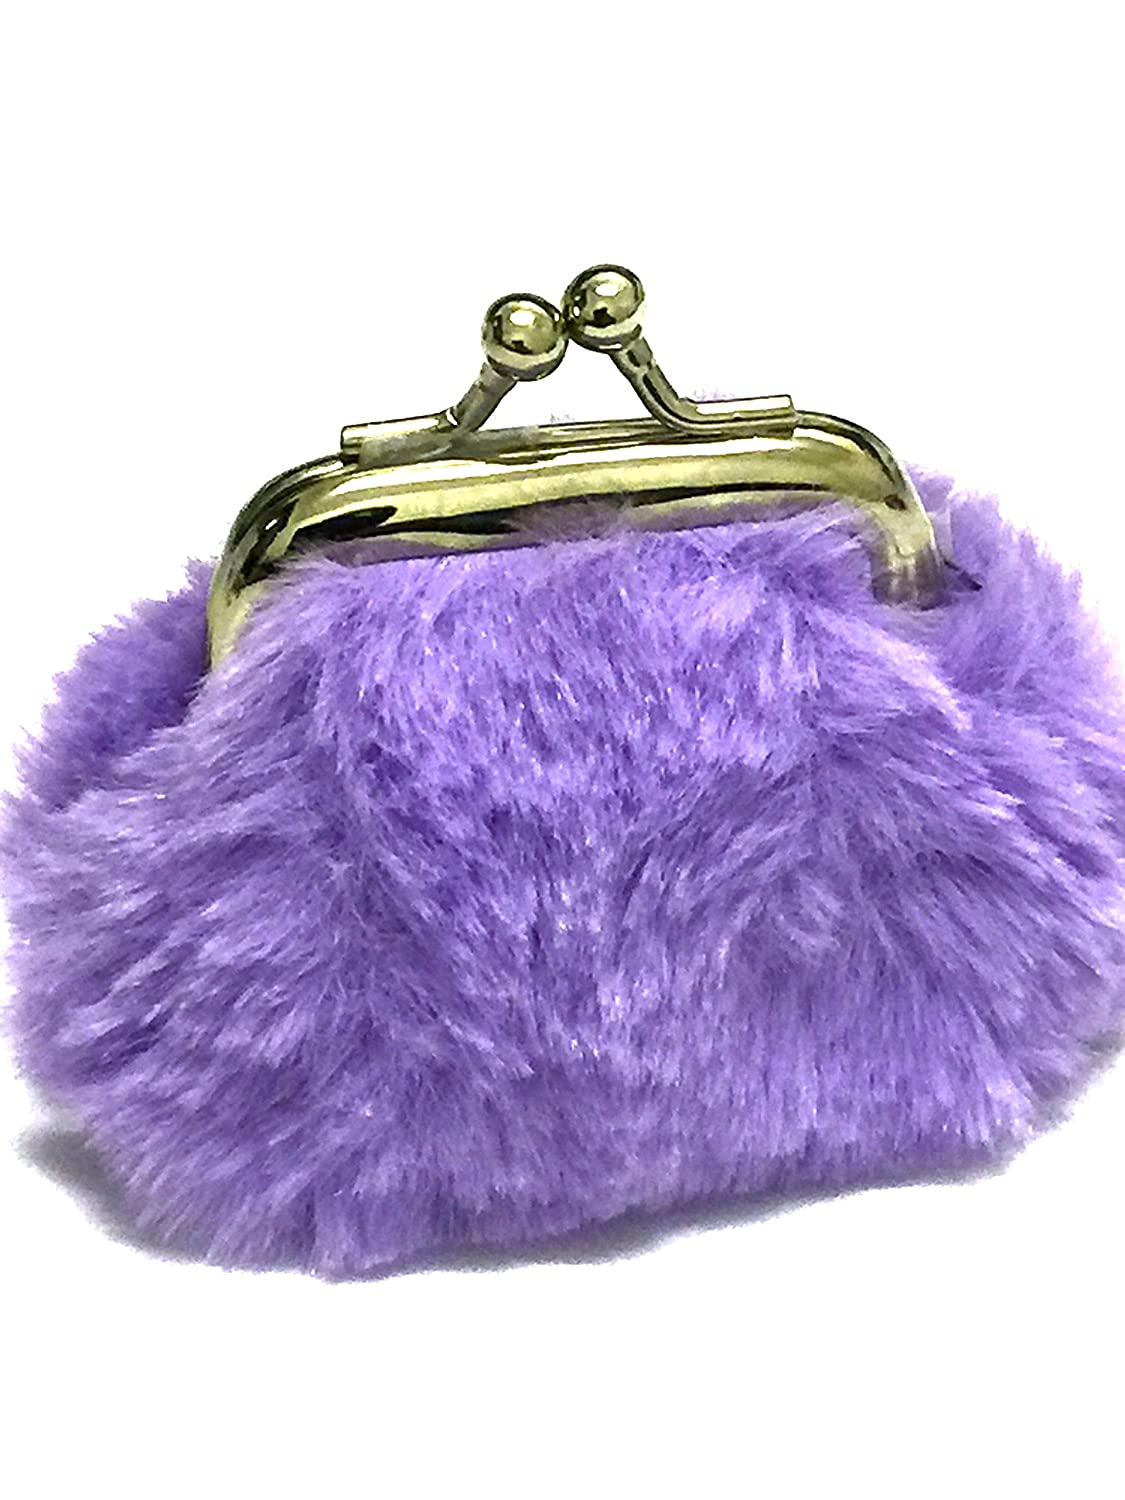 La Peach Fashions Gorgeous Children Fake Fur Coin Purse Lovely Colours Perfect Gift And Stocking Filler (Aqua)